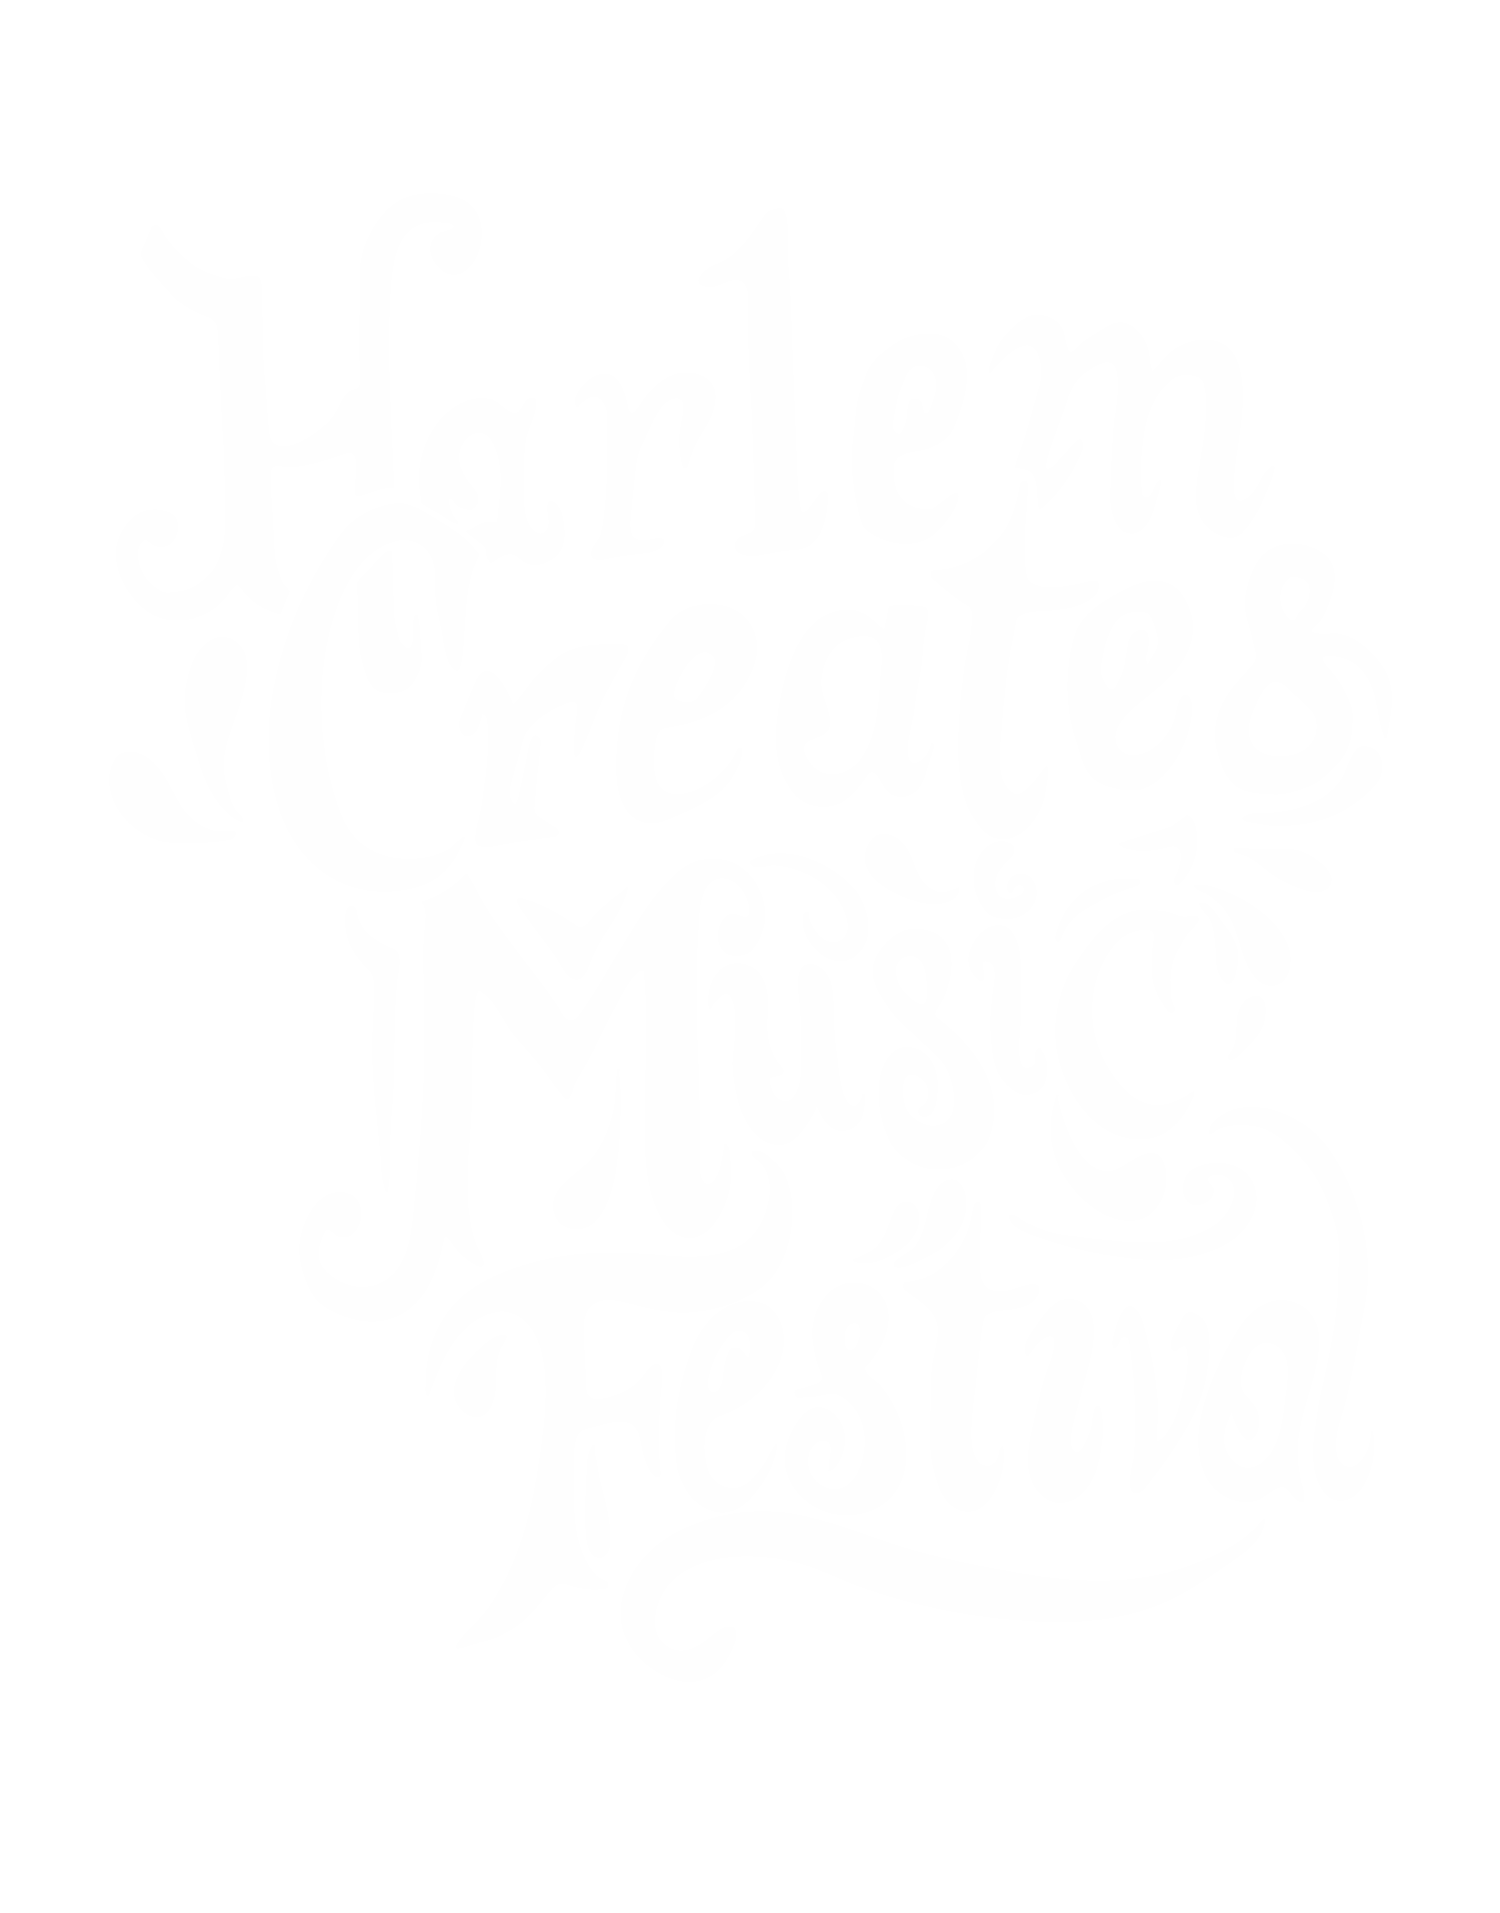 Harlem Creates